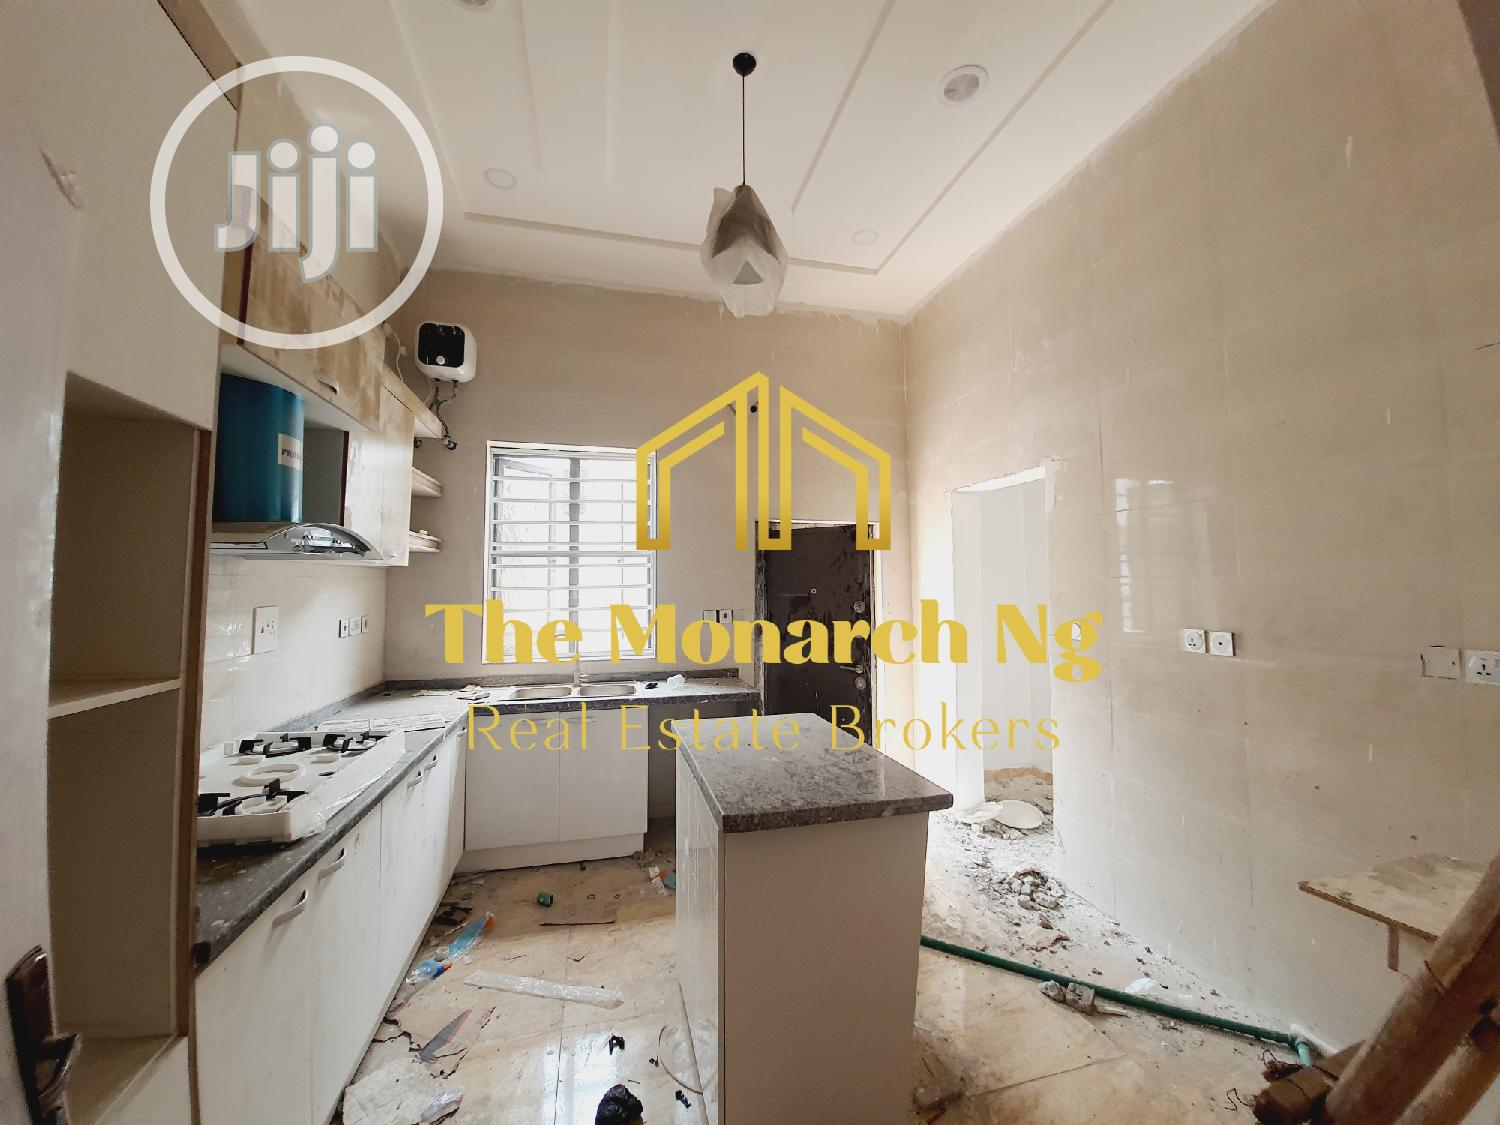 5 Bedrooms Semi-Detached Duplex House and Apartment (Home)   Houses & Apartments For Sale for sale in Chevron, Lekki, Nigeria